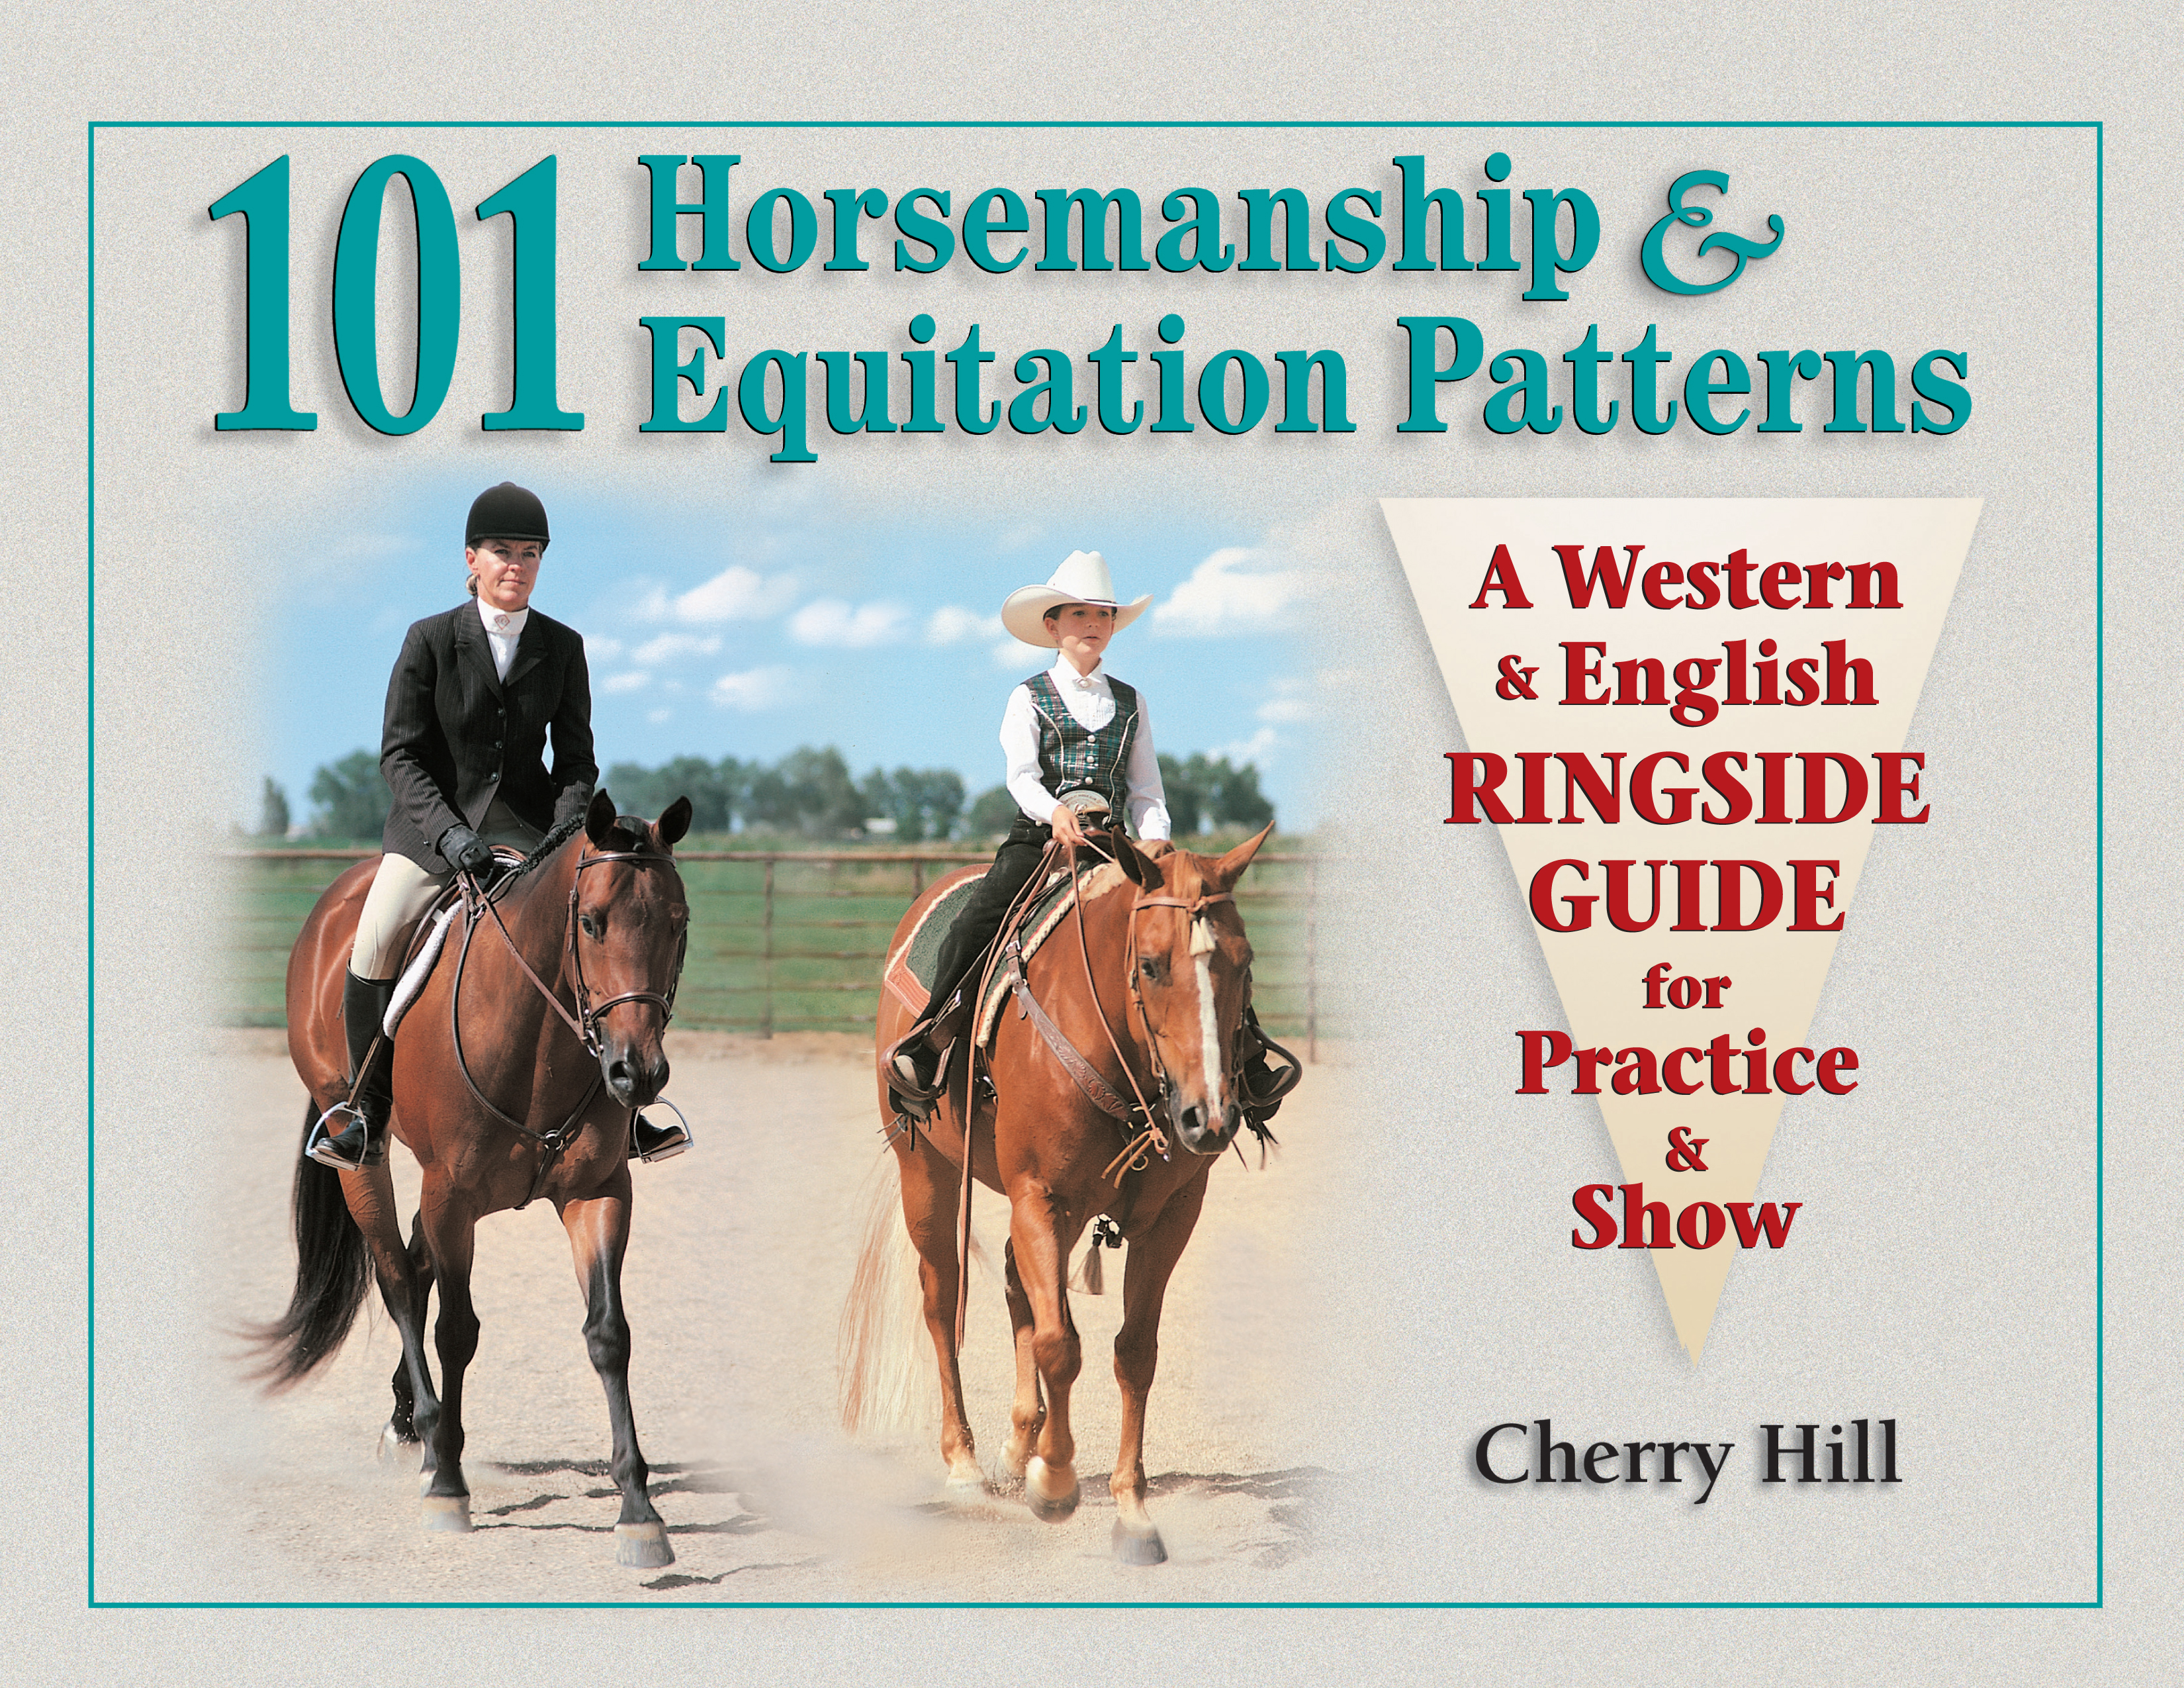 101 Horsemanship & Equitation Patterns A Western & English Ringside Guide for Practice & Show - Cherry Hill